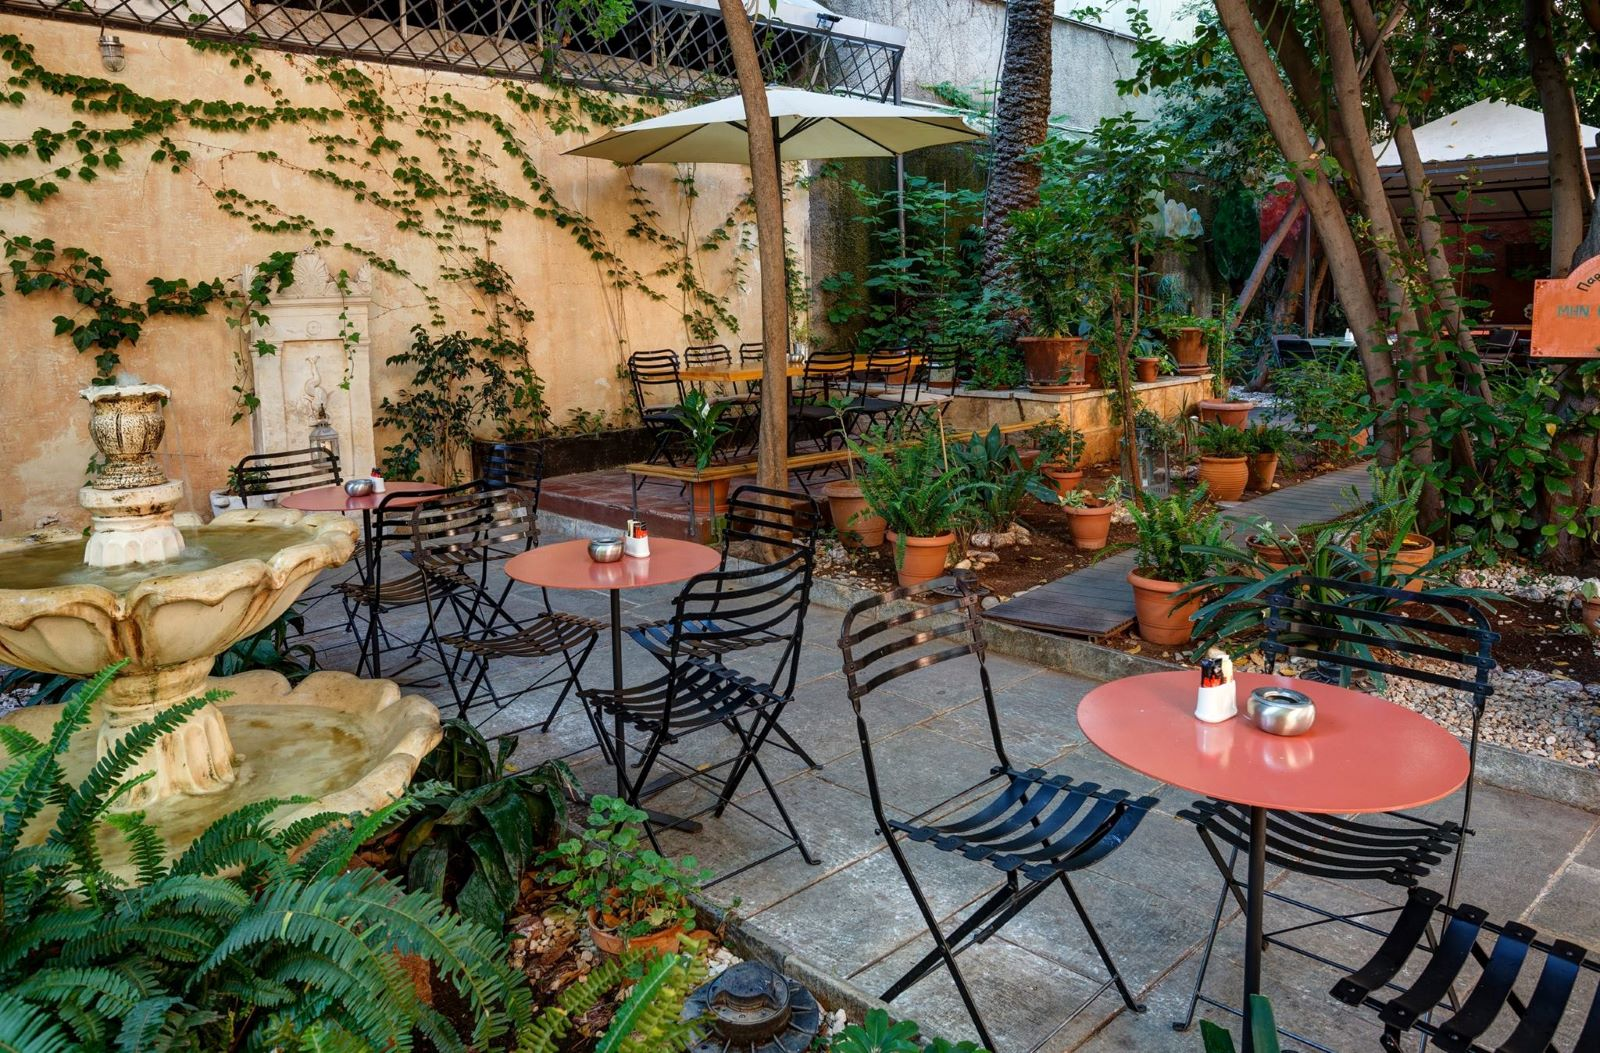 At  Black Duck  you will find a cute courtyard and you can listen to amazing music selections by their DJs. Photo source: exodos24.com